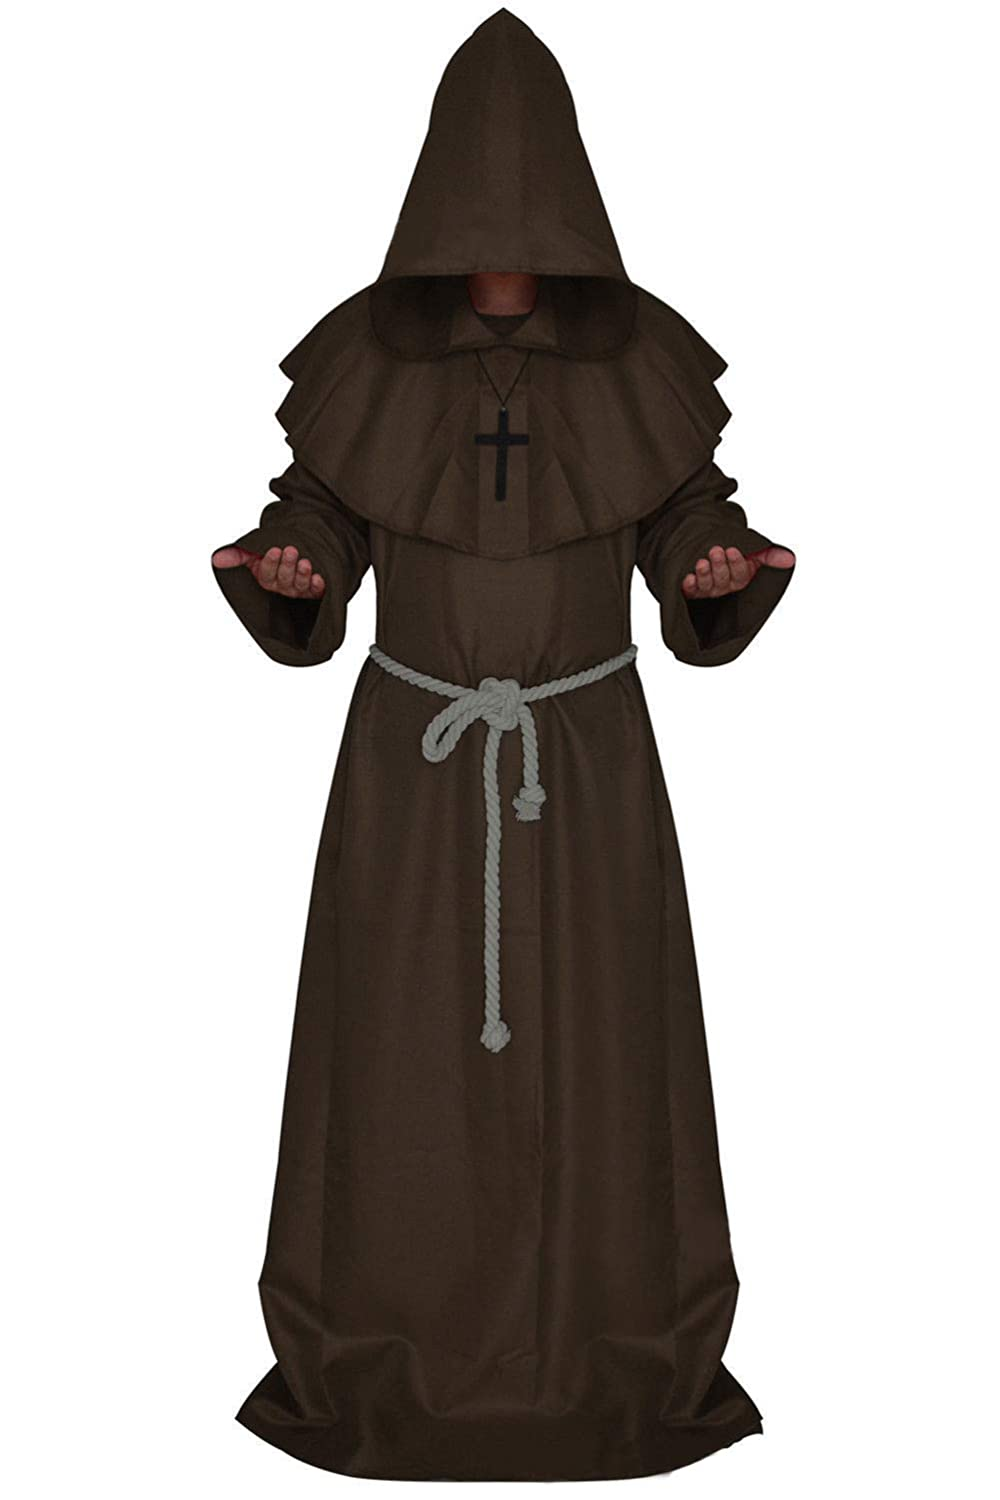 Costume for The Medieval Monks Priest Robe Hooded Cosplay Various Styles